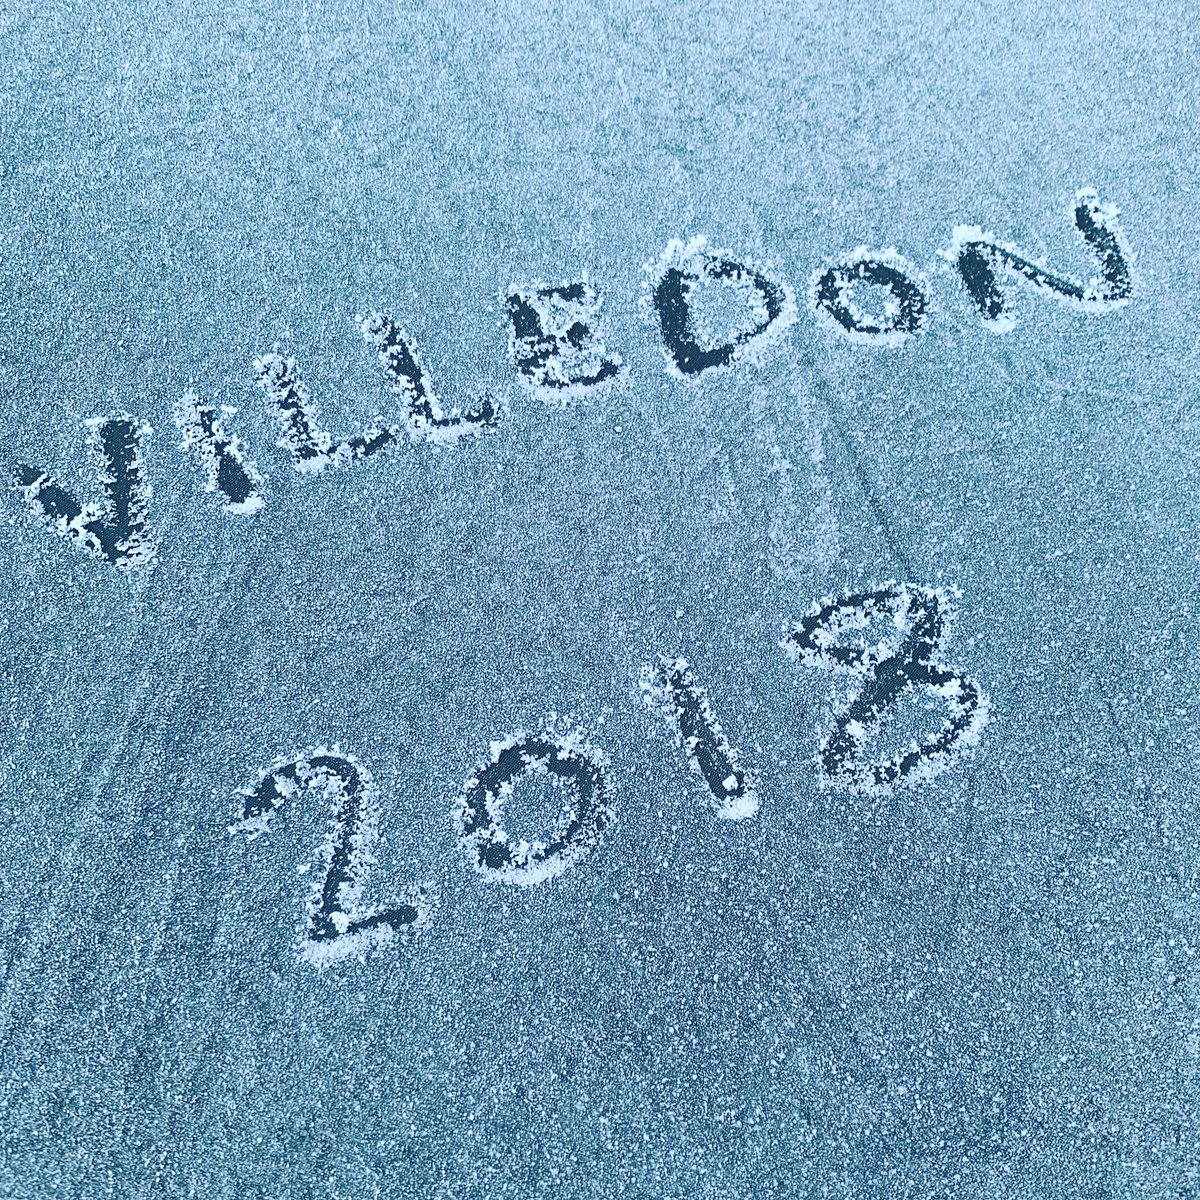 Chilly one this morning temperature on the up from today so fingers crossed! #villedon #carpfishing